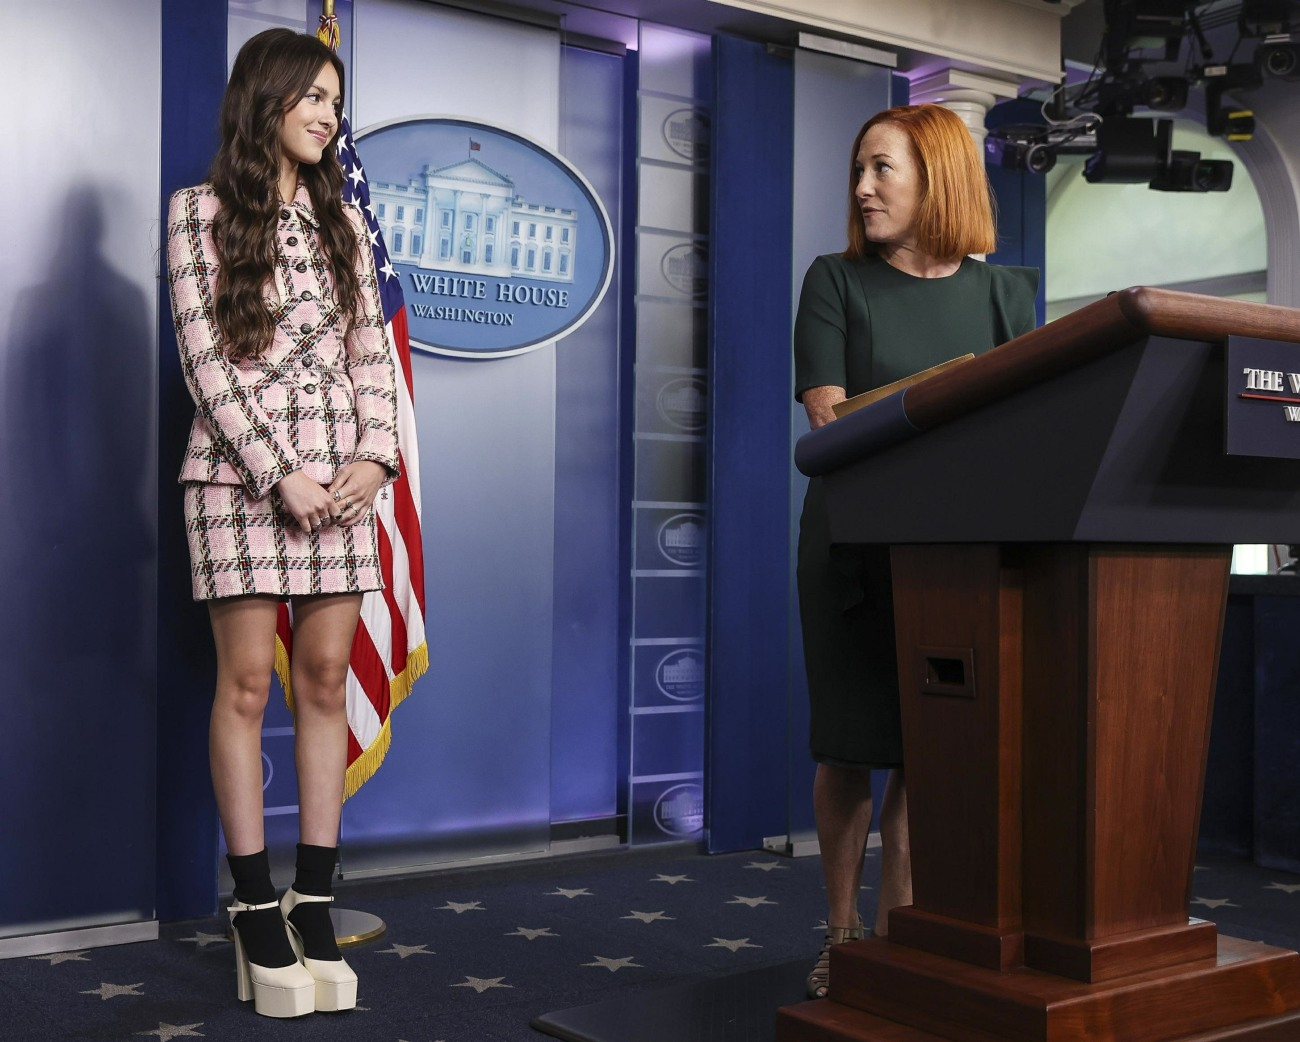 Olivia Rodrigo speaks during a news conference in the James S. Brady Press Briefing Room with Jen Psaki